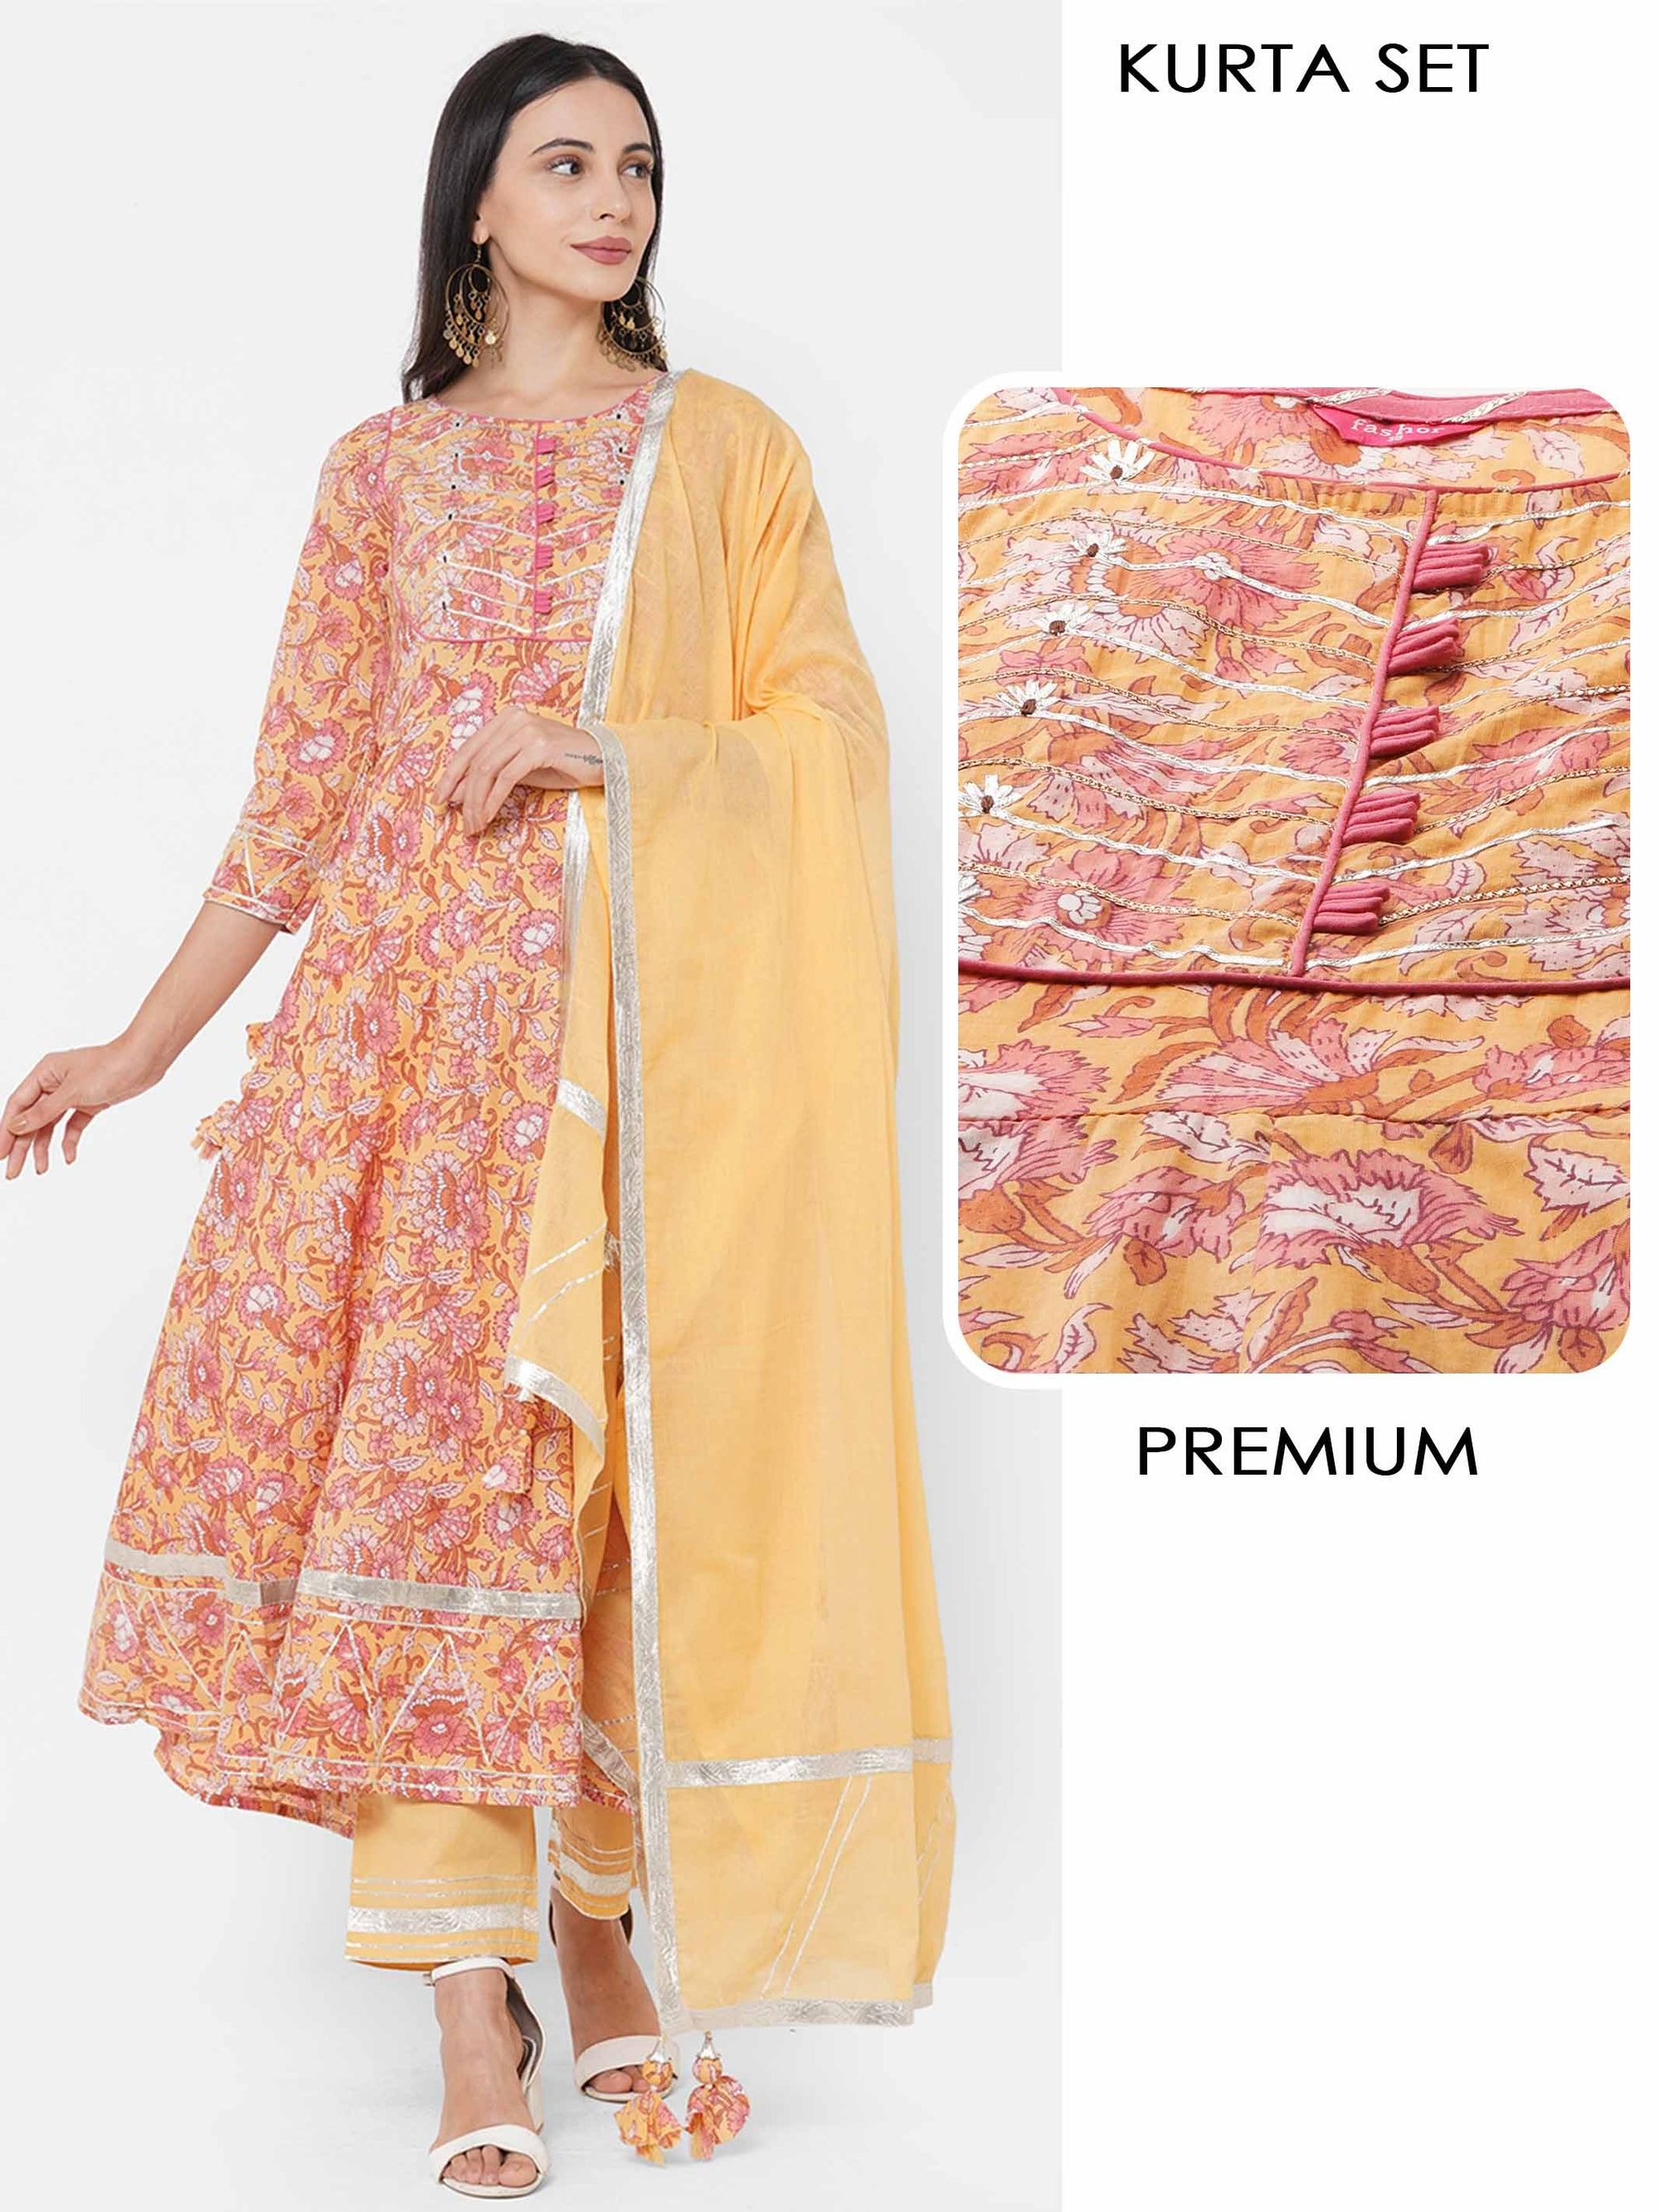 Floral Printed & Gota Embroidered Kurta with Solid Pant with Gota Embroidered Dupatta - Multi